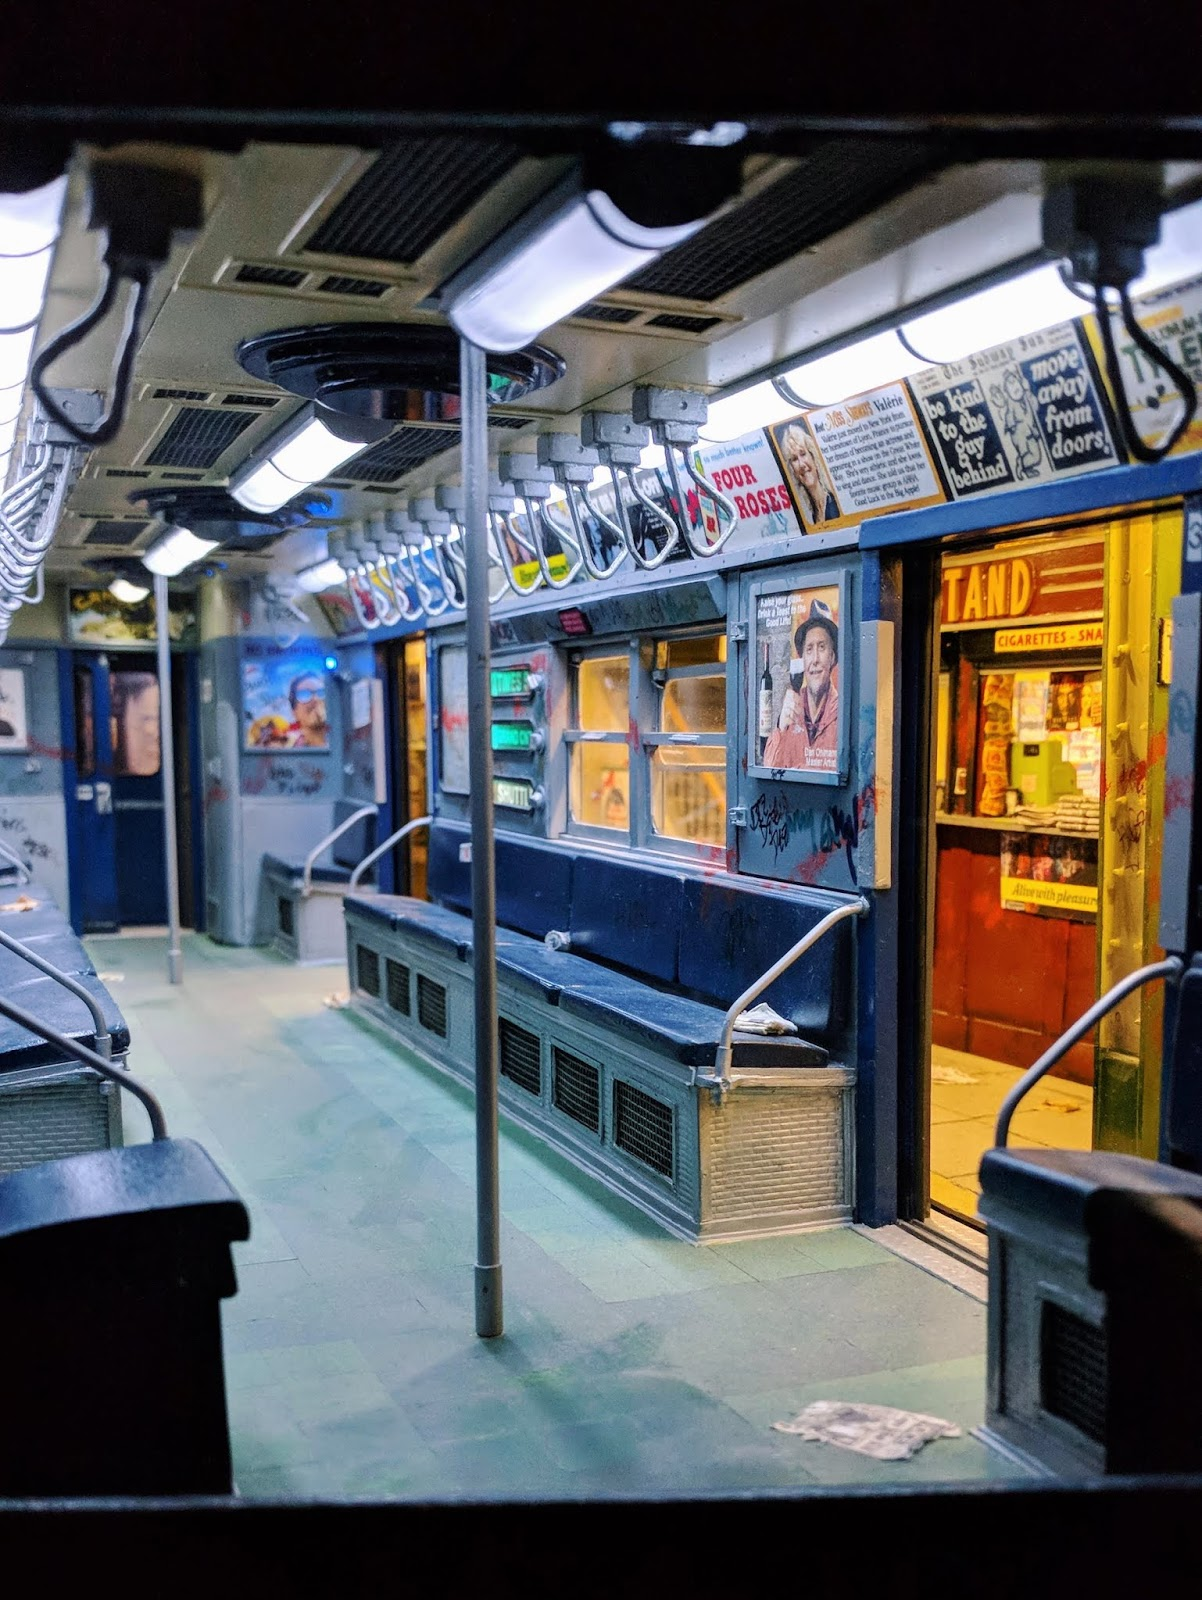 miniature of the nyc subway